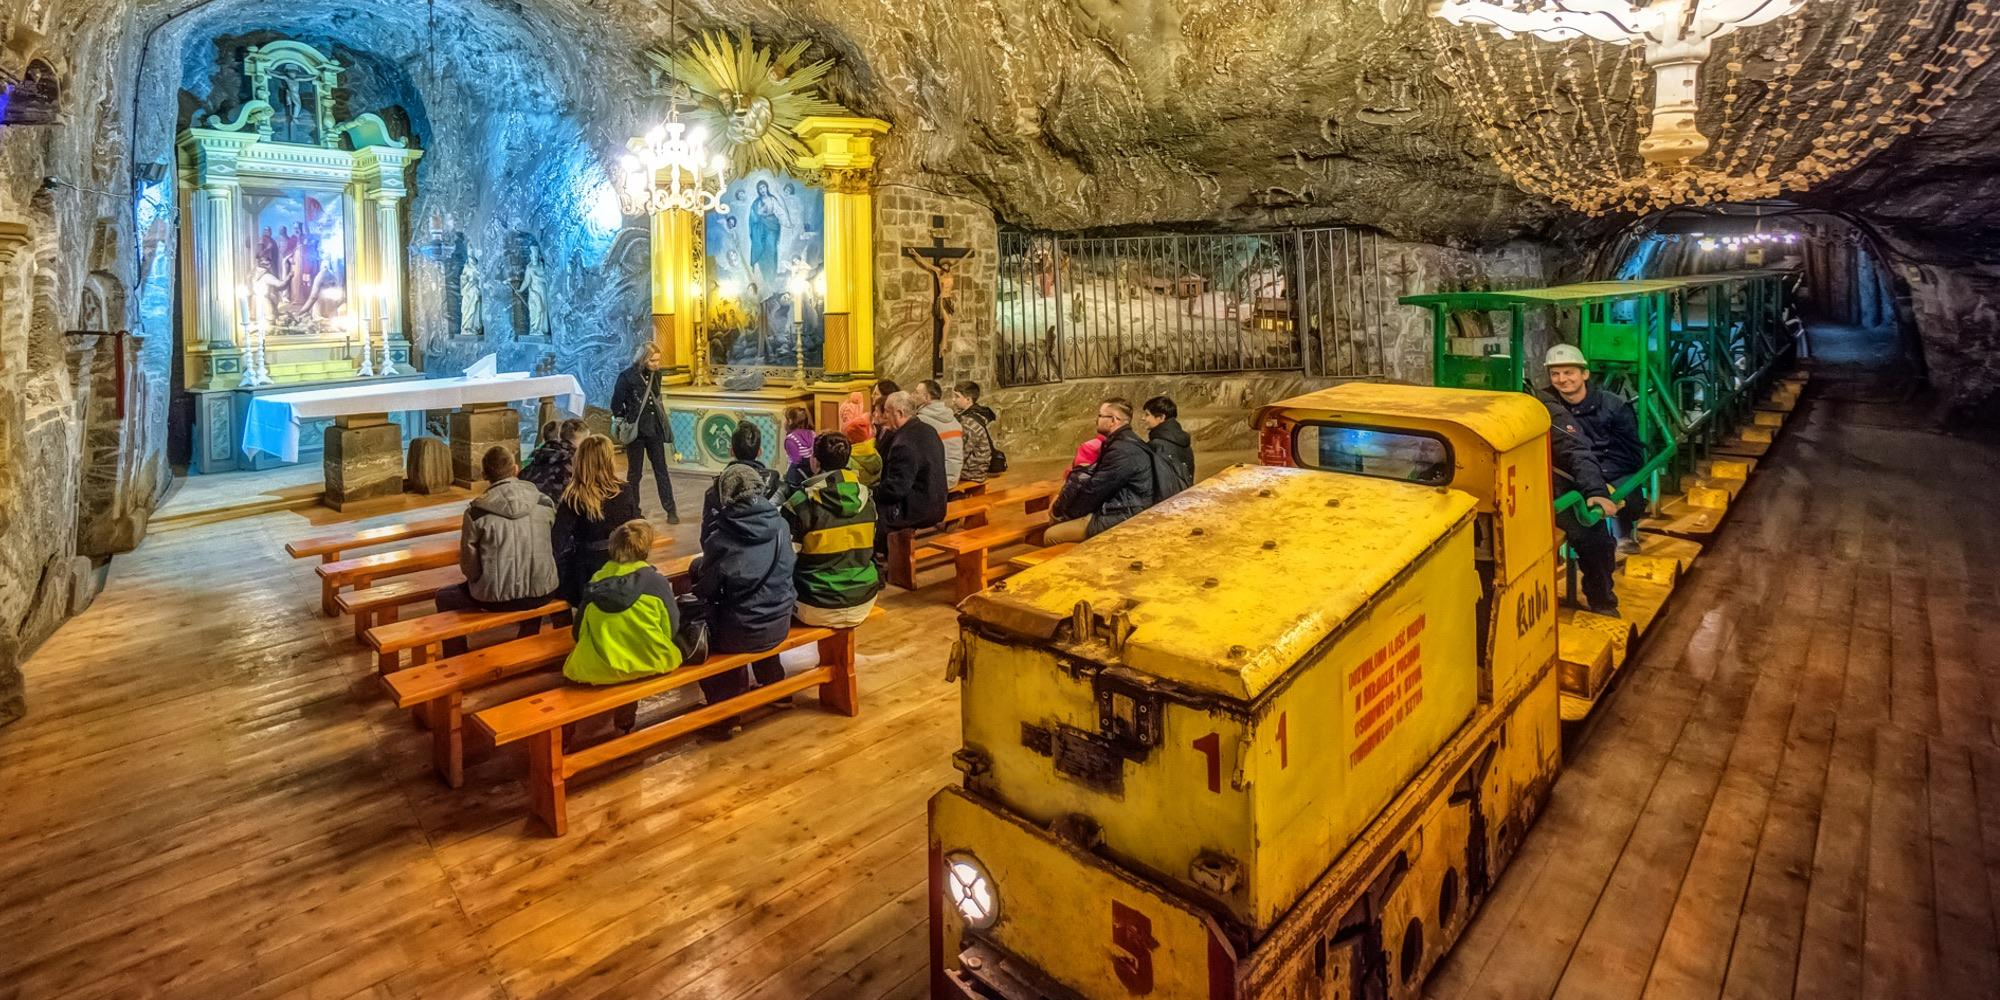 Underground tourist rail tracks in the Bochnia Salt Mine—the only rail track in the world that passes through a chapel interior. – © Adam Brzoza